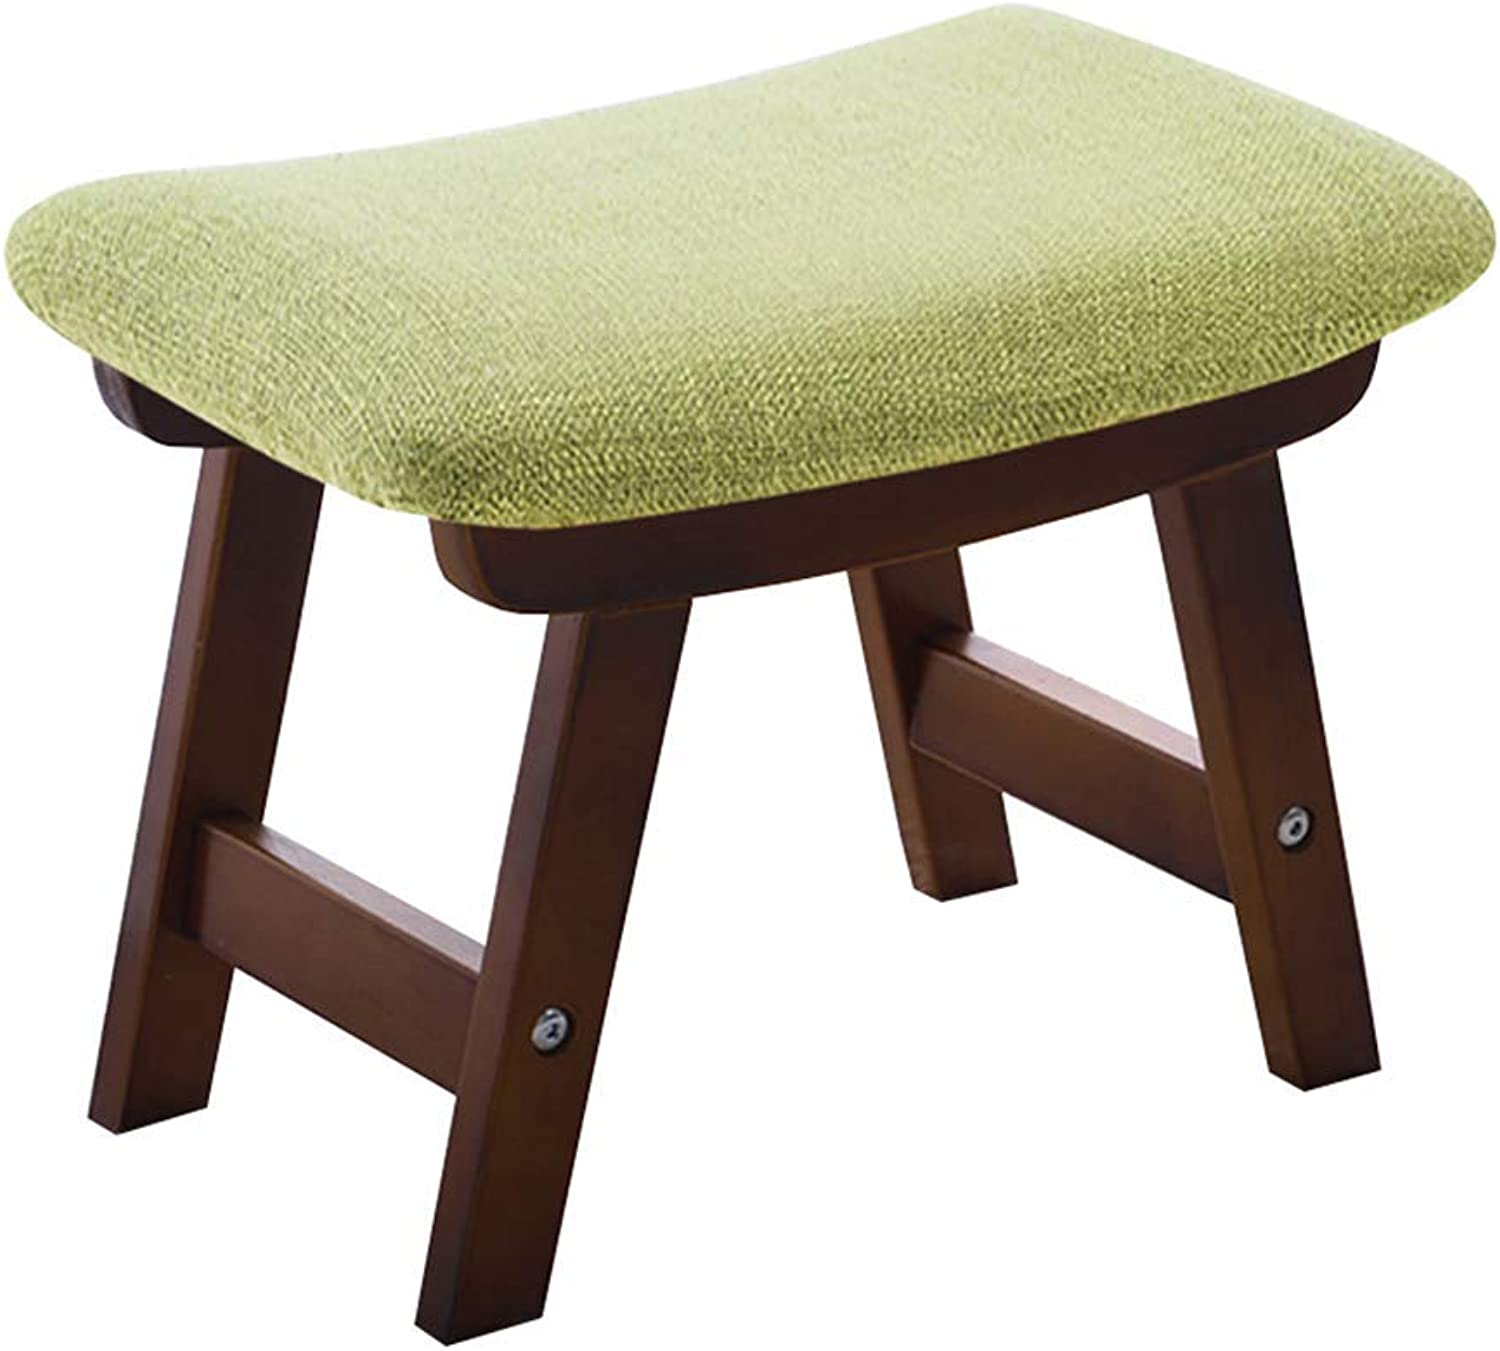 BBG Fashion Creative Small Furniture Anti-Slip Stool Simple Modern Solid Wood Stool Rectangular Bench Fabric Home Change shoes Bench Multifunction Household Creative